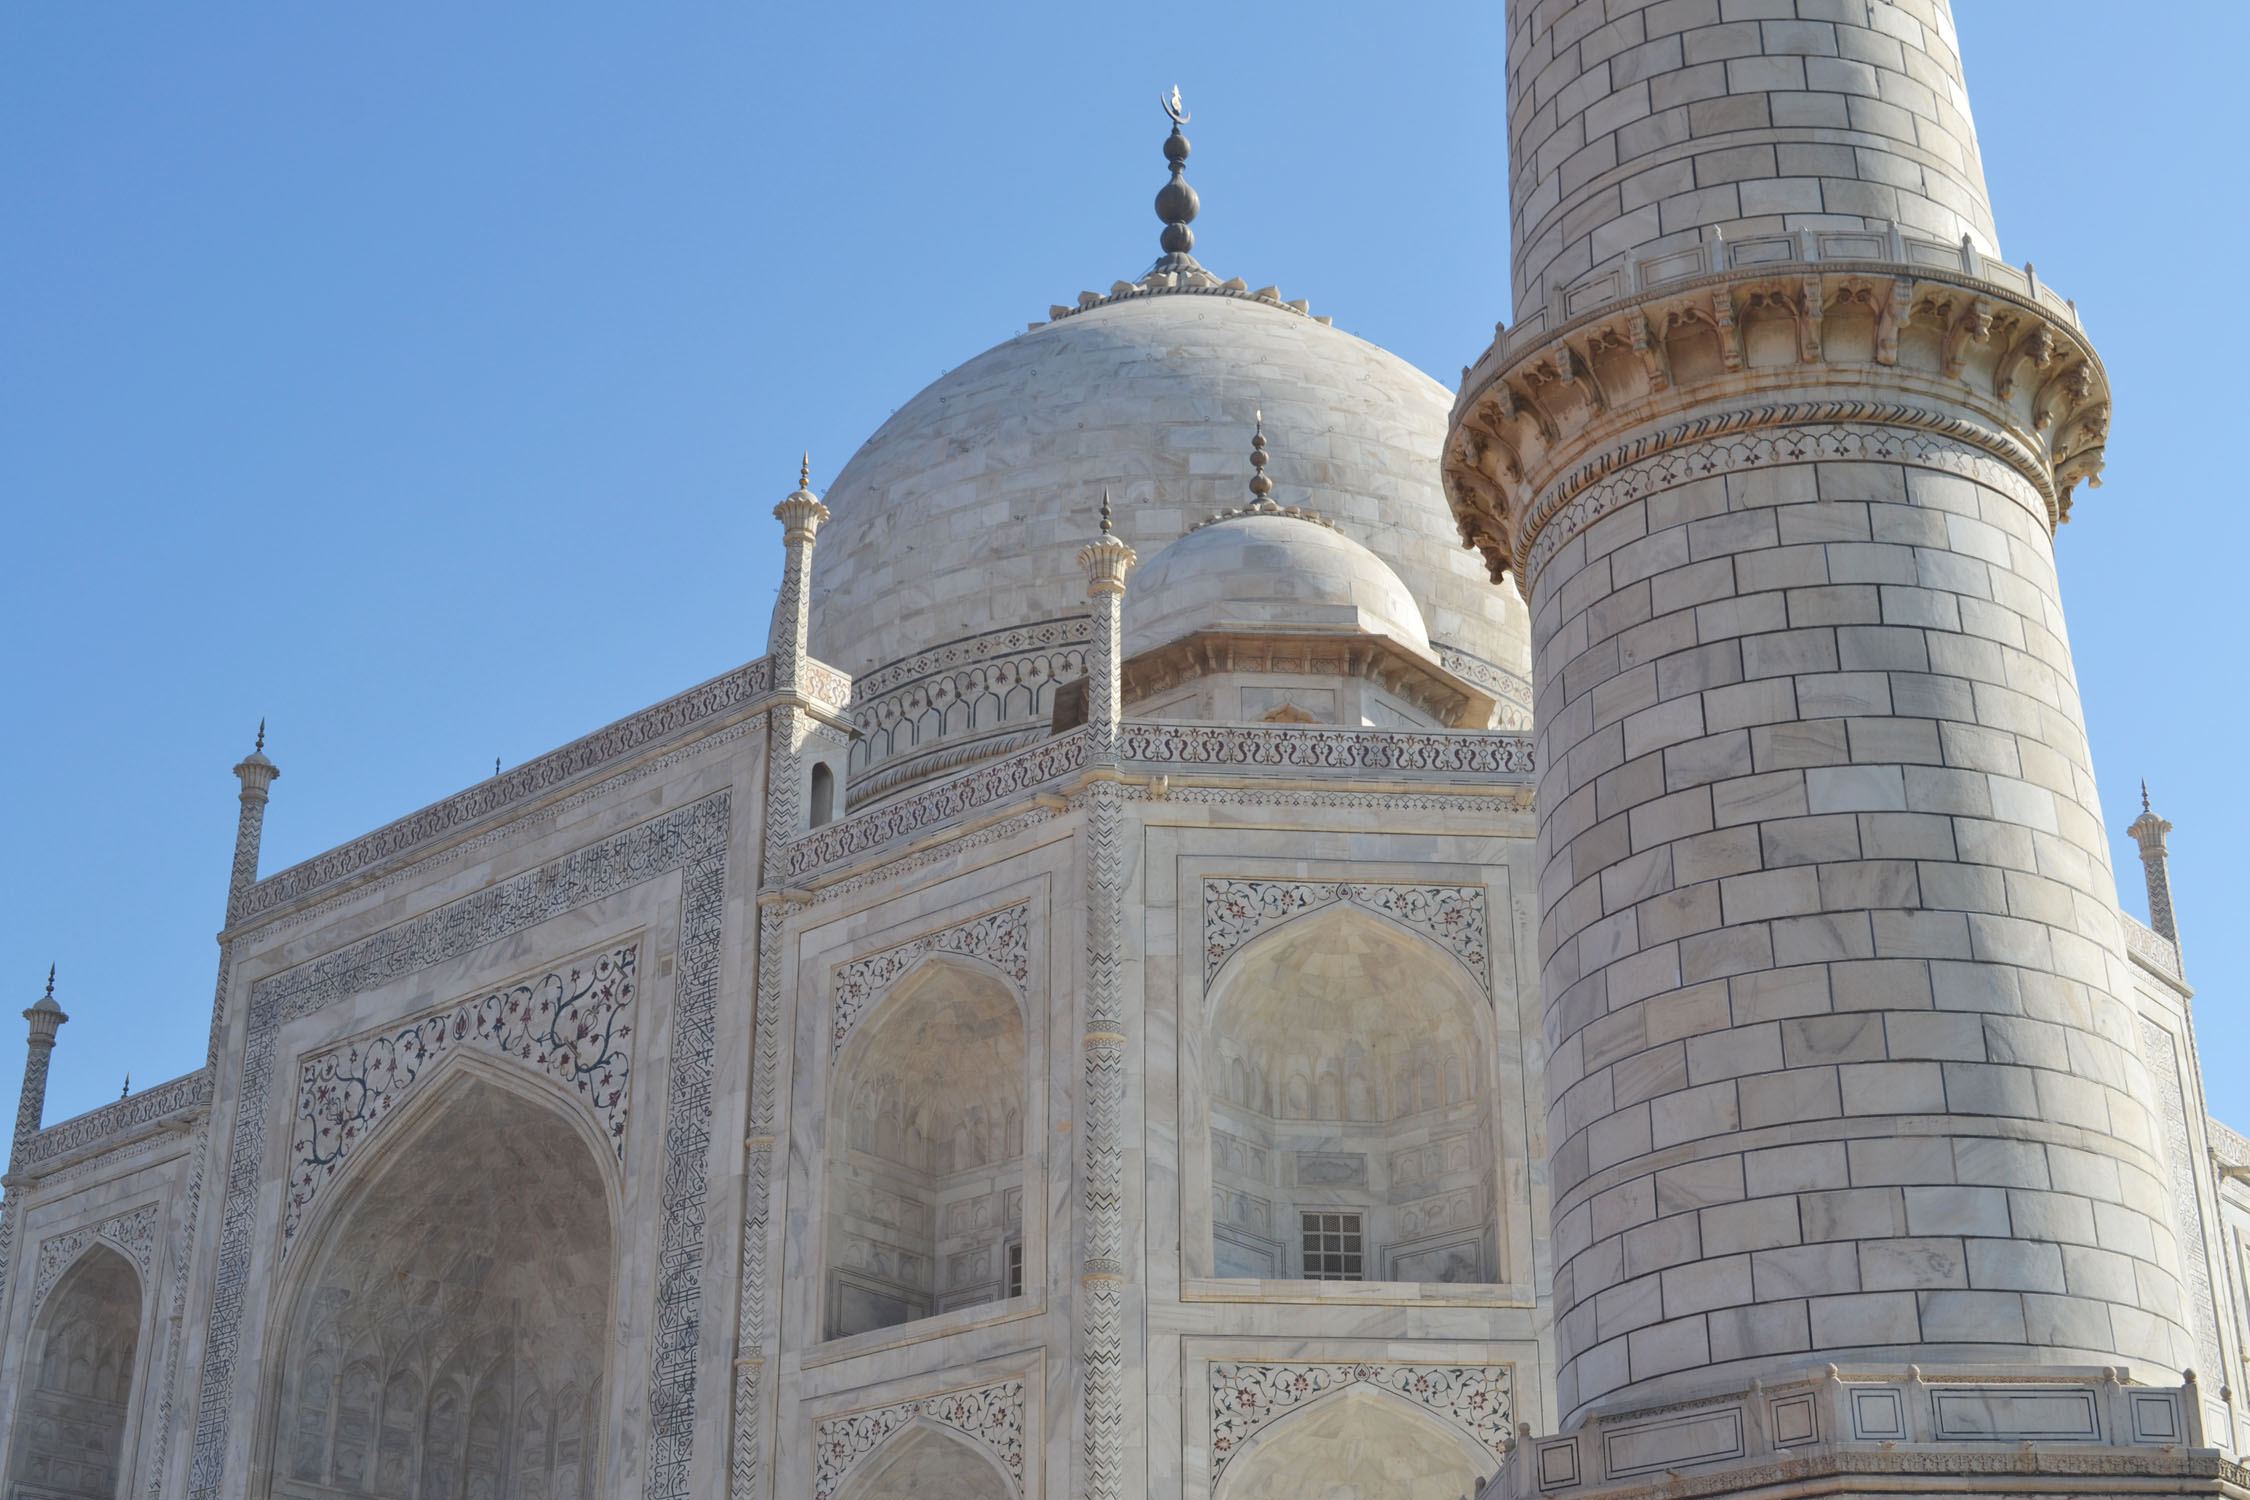 Close up view of a minaret and main structure of the Taj Mahal in Agra